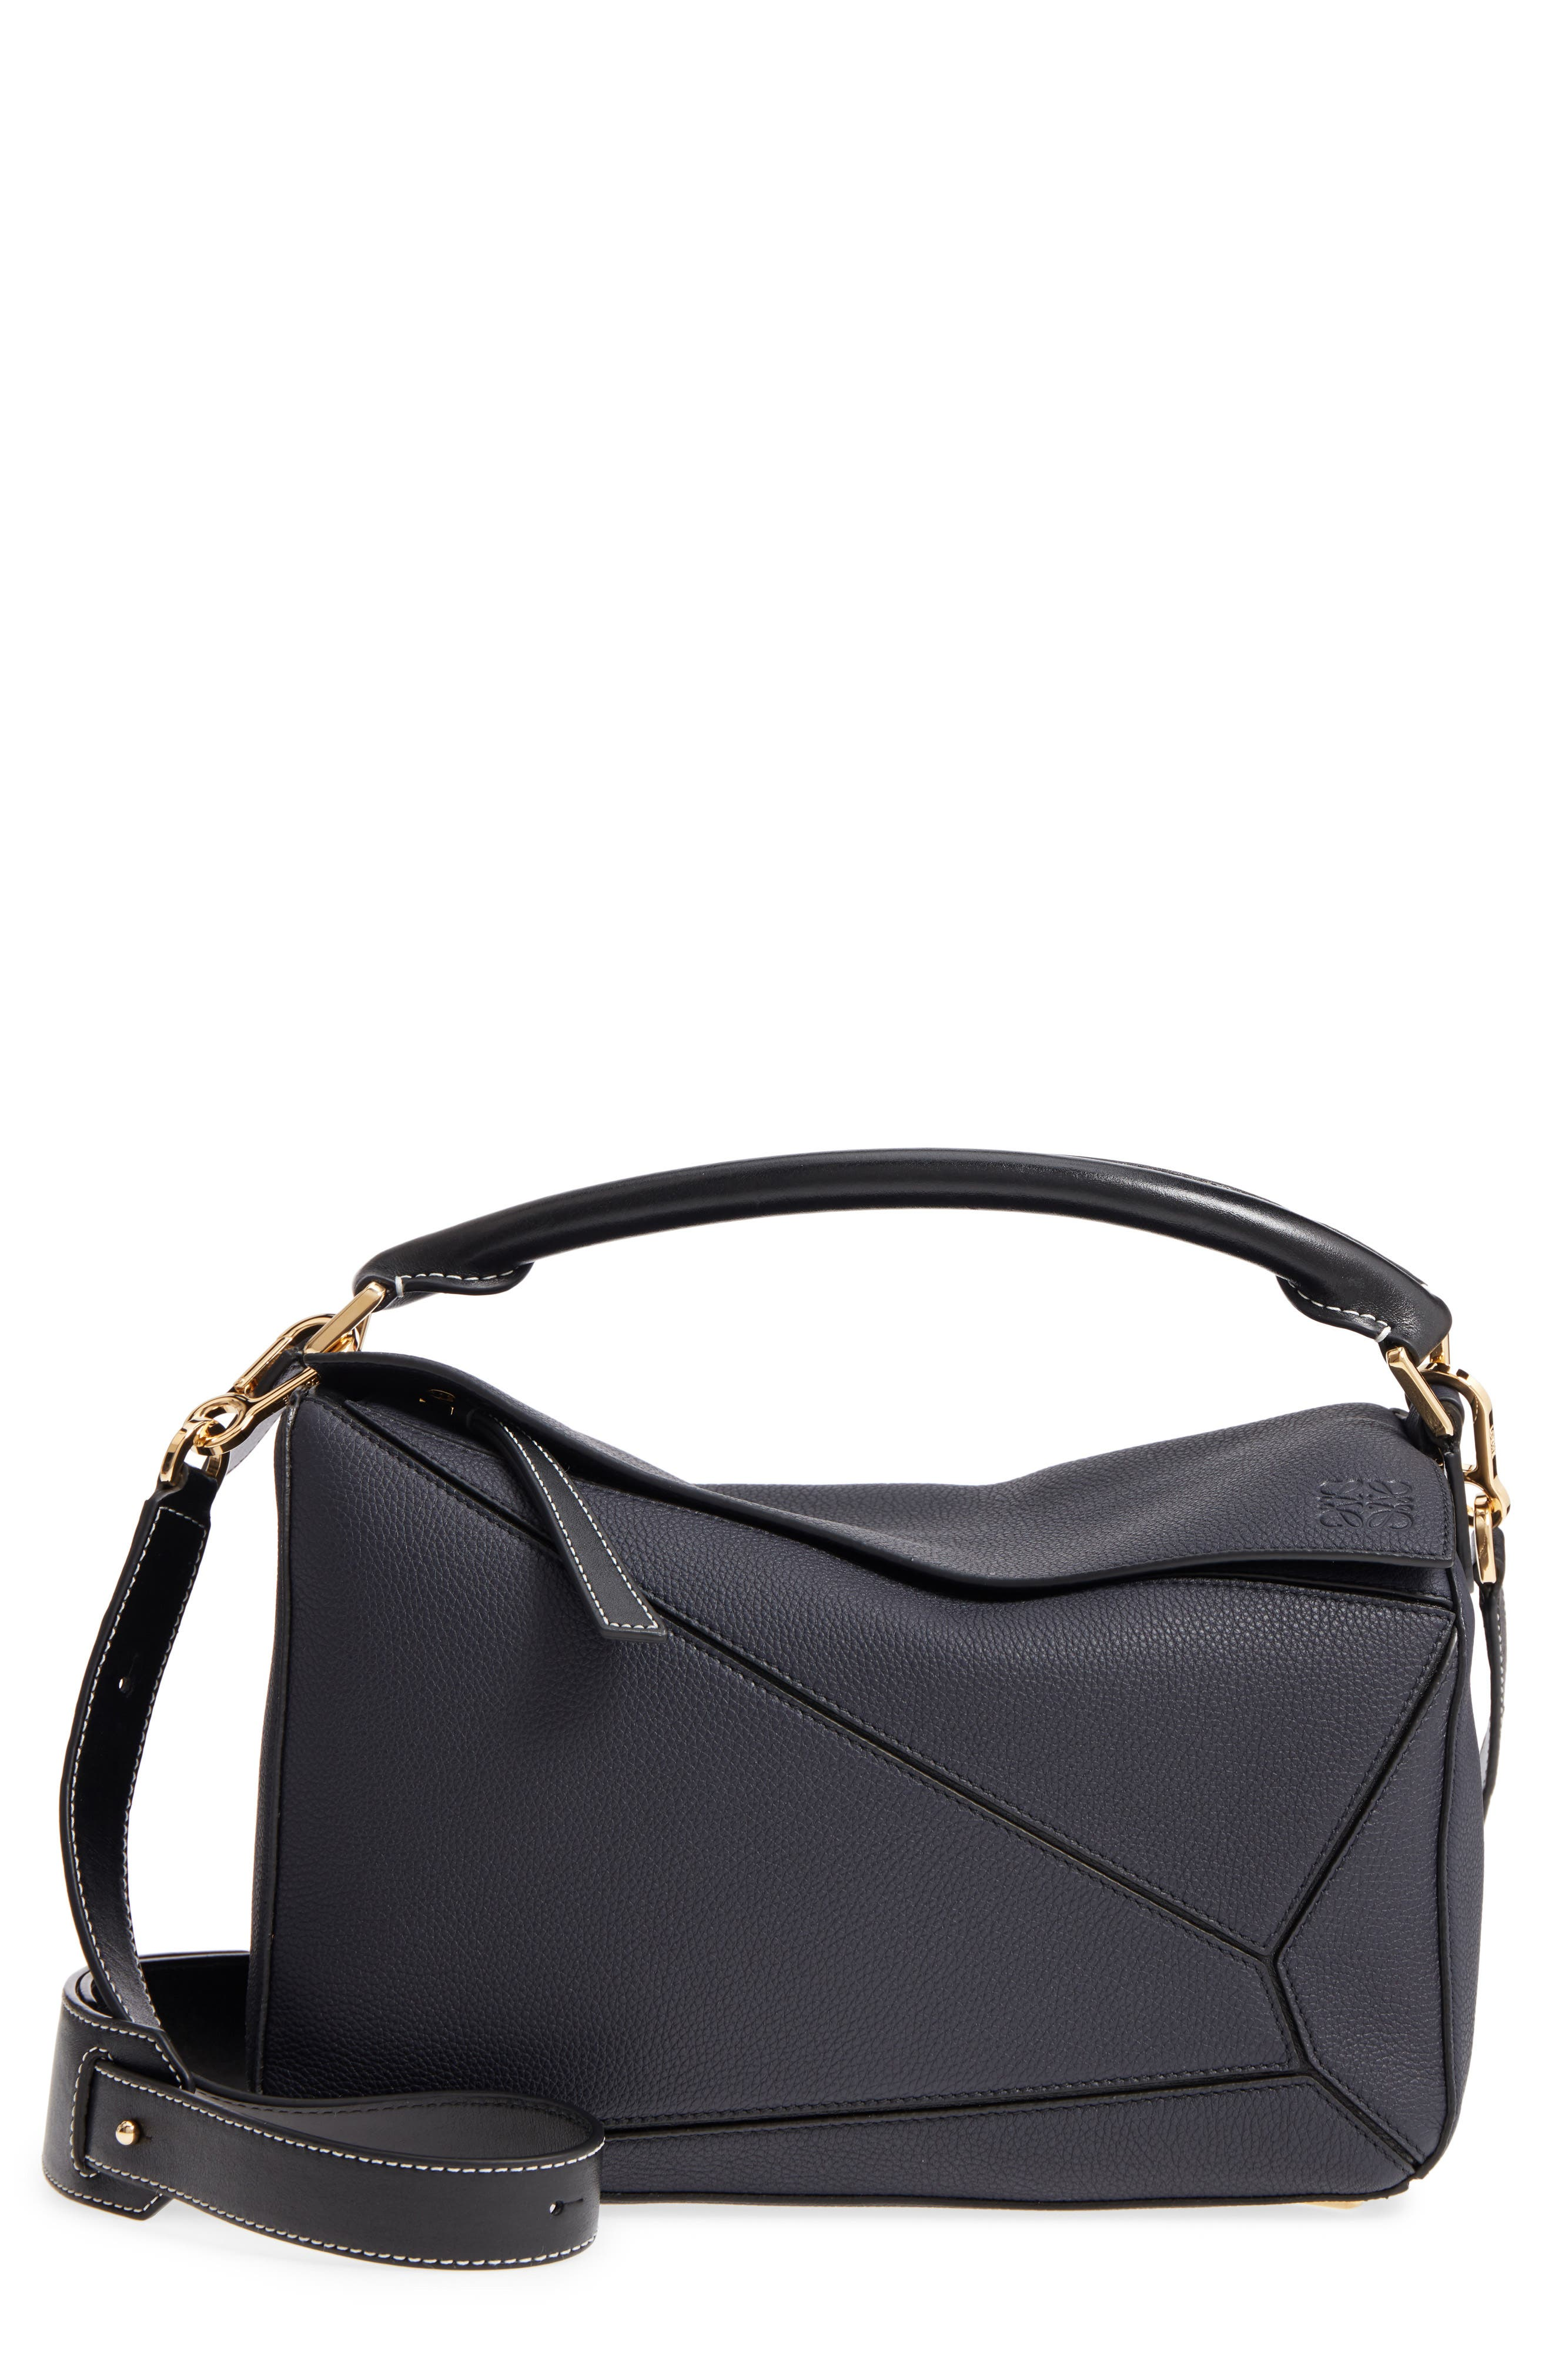 Medium Puzzle Leather Shoulder Bag,                         Main,                         color, 405